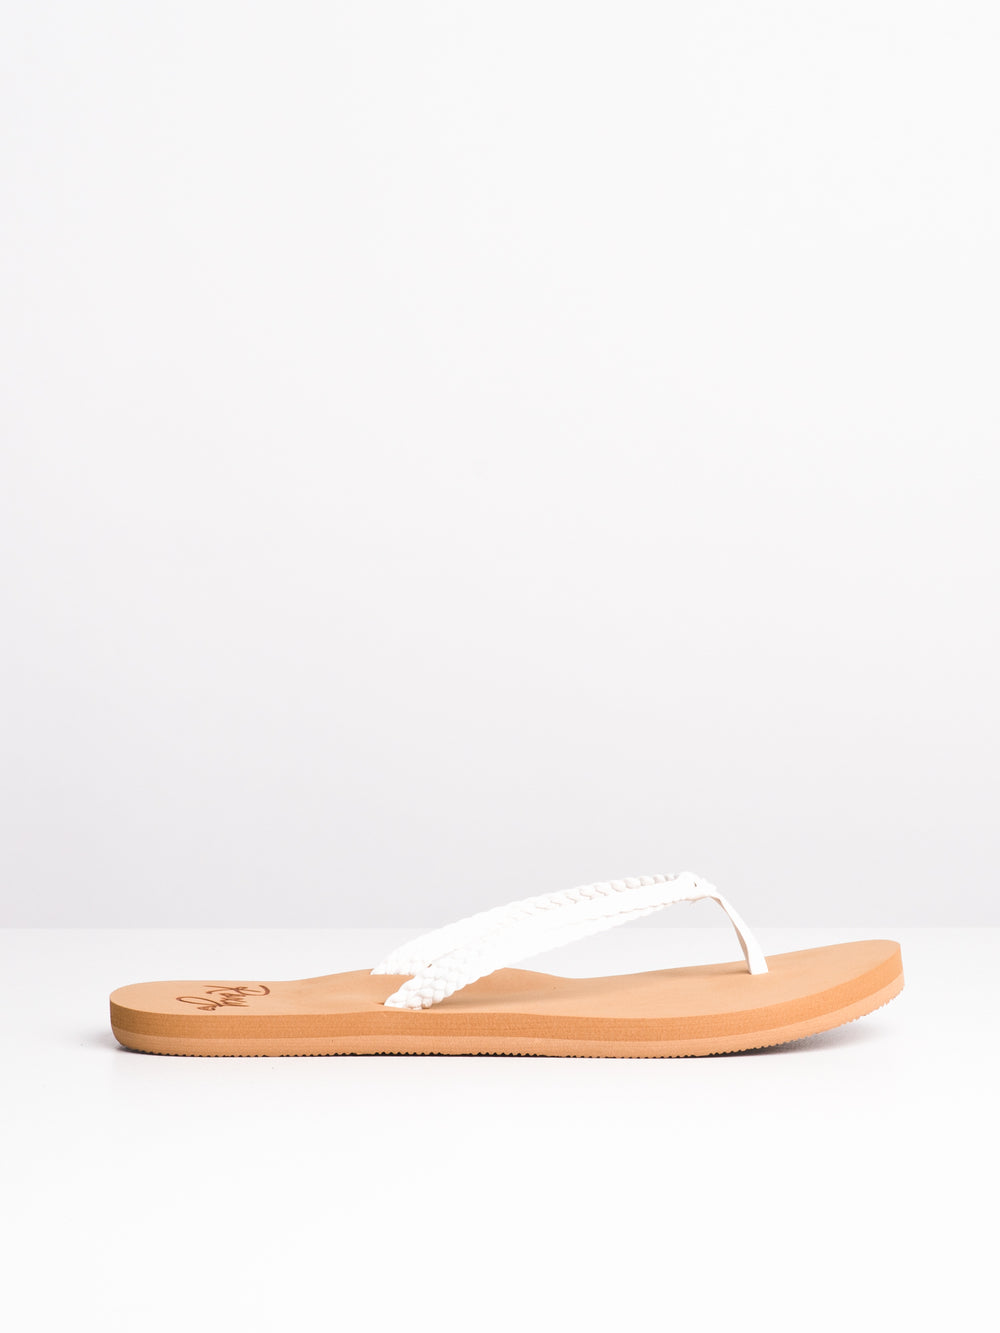 WOMENS COSTAS - WHITE